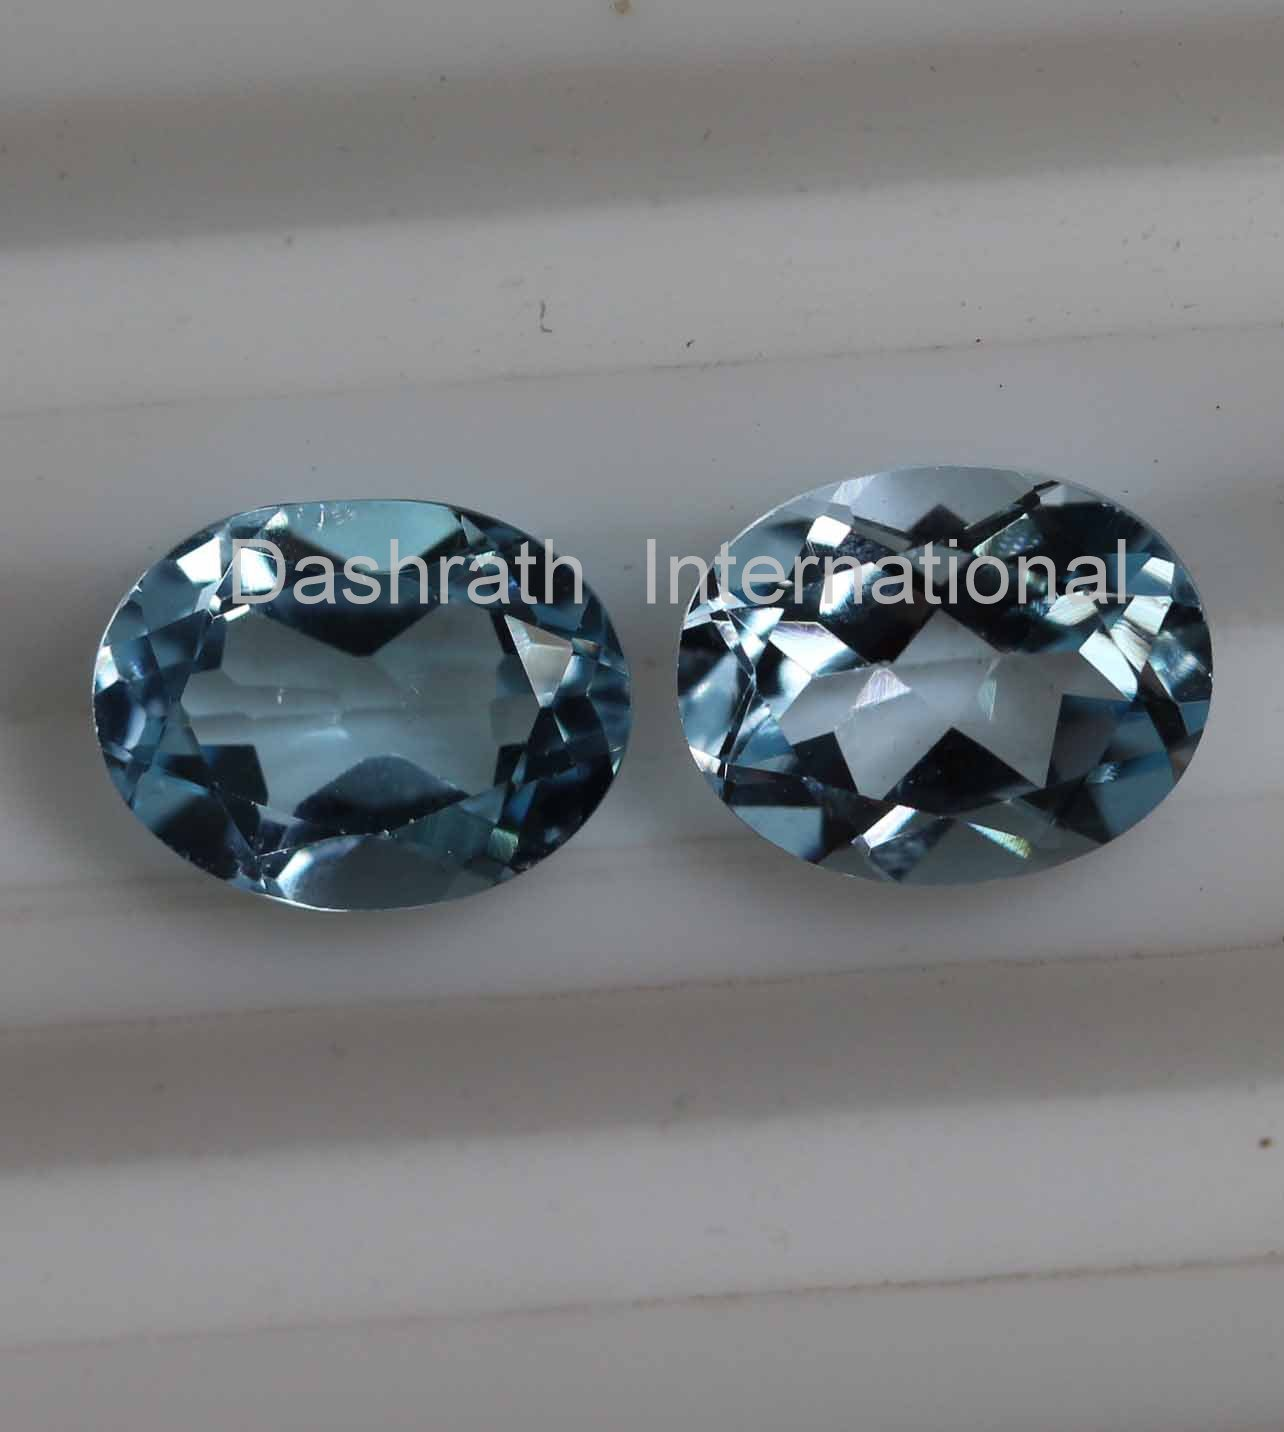 8x10mm  Natural Sky Blue Topaz Faceted Cut Oval  5 Pieces Lot  Top Quality Loose Gemstone